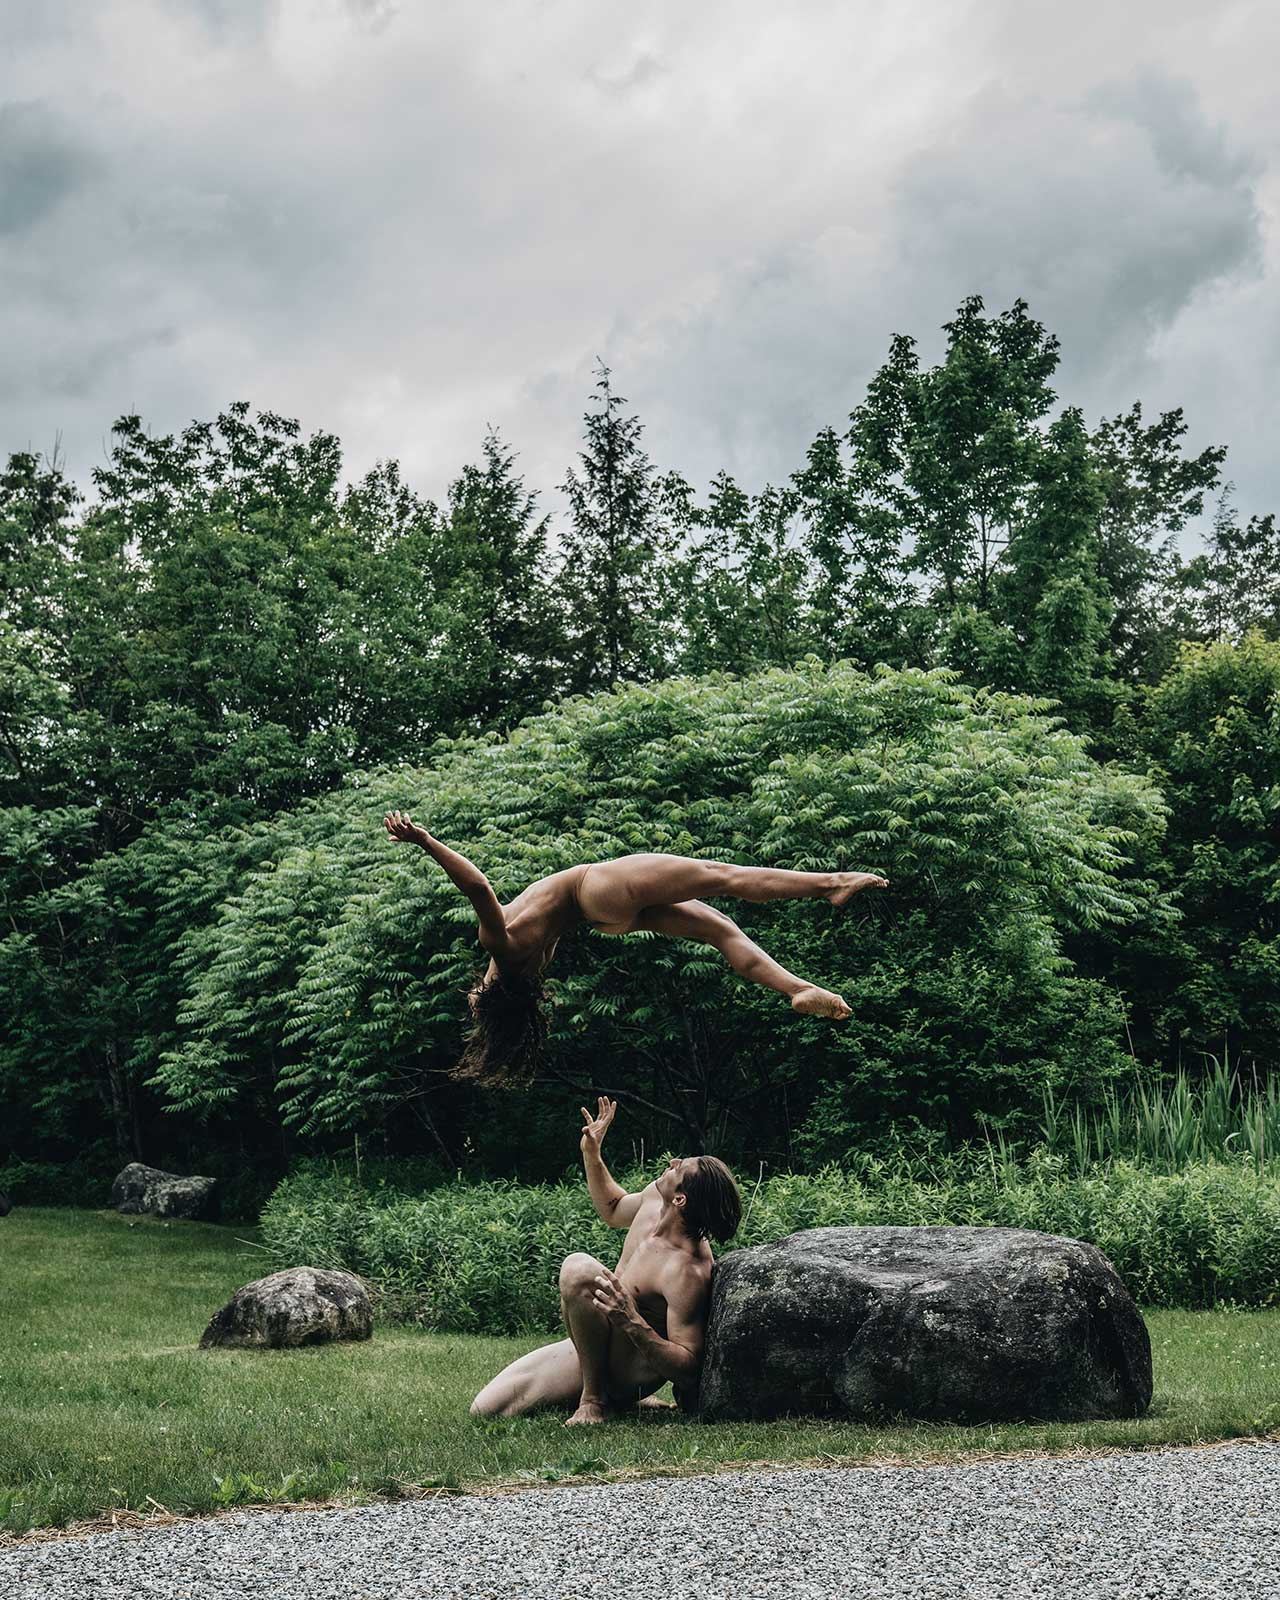 Location: Jacob's Pillow | Dancers: Jake Warren, Isabella Diaz | Photo © Oveck Reyes from the series #CamerasandDancers.